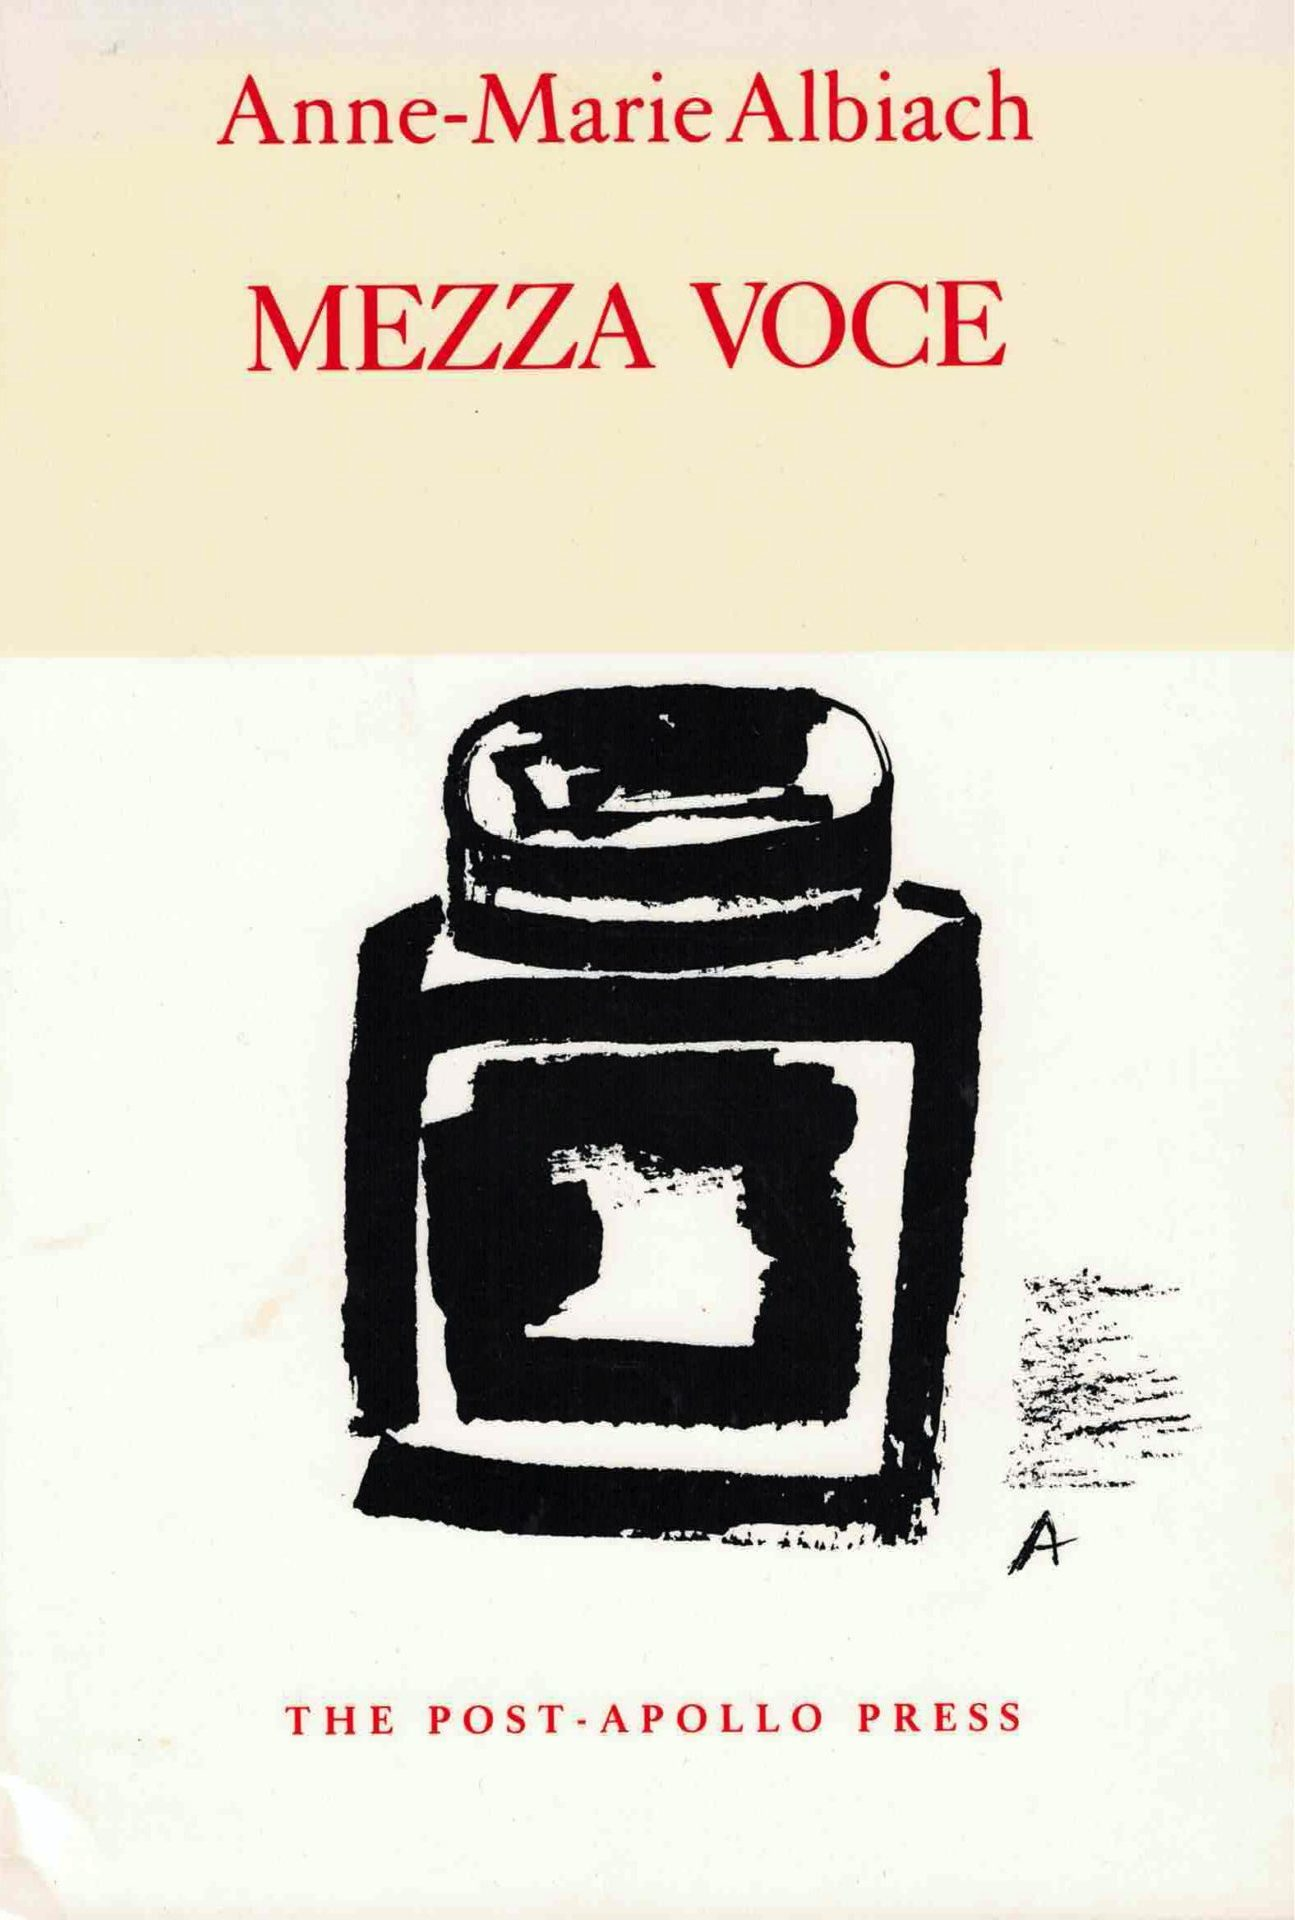 cover of Mezza Voce by Anne-Marie Albiach, black hand painted inkwell on beige background